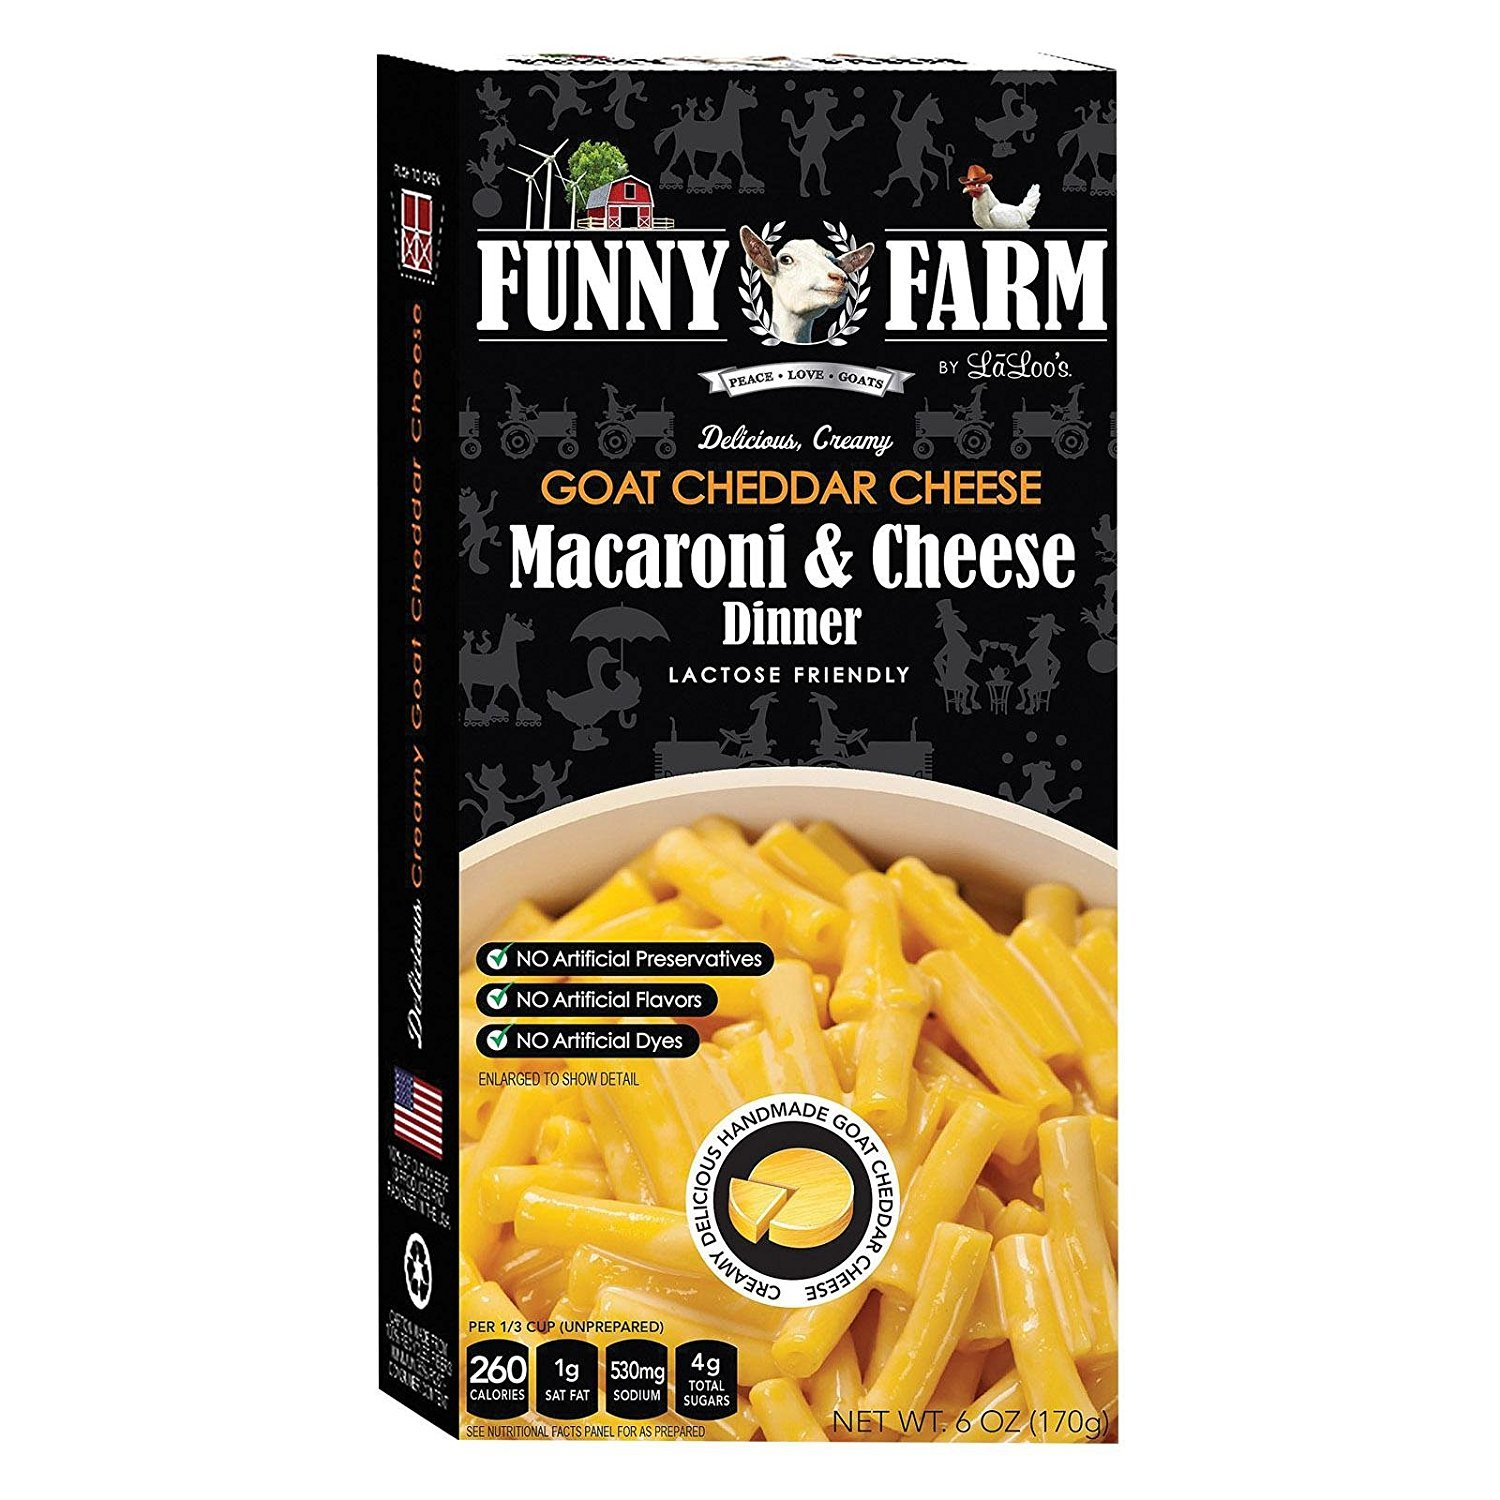 FUNNY FARM, MAC N CHS, GOAT CHS, GF, Pack of 12, Size 6 OZ - No Artificial Ingredients Gluten Free Wheat Free